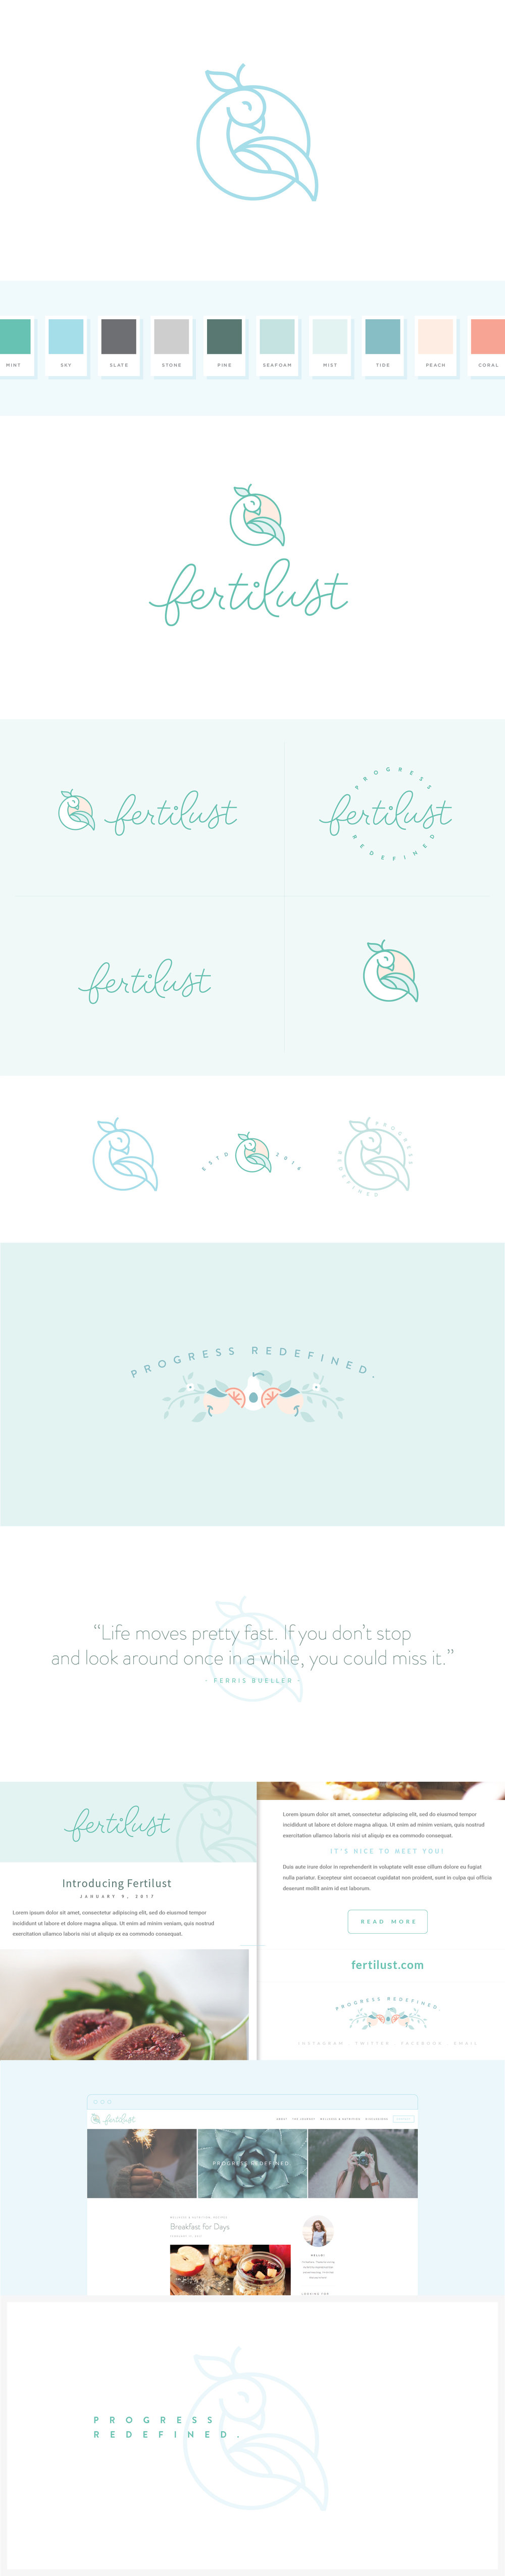 Fertilust - logo, brand identity, & website crafted by Melissa Yeager